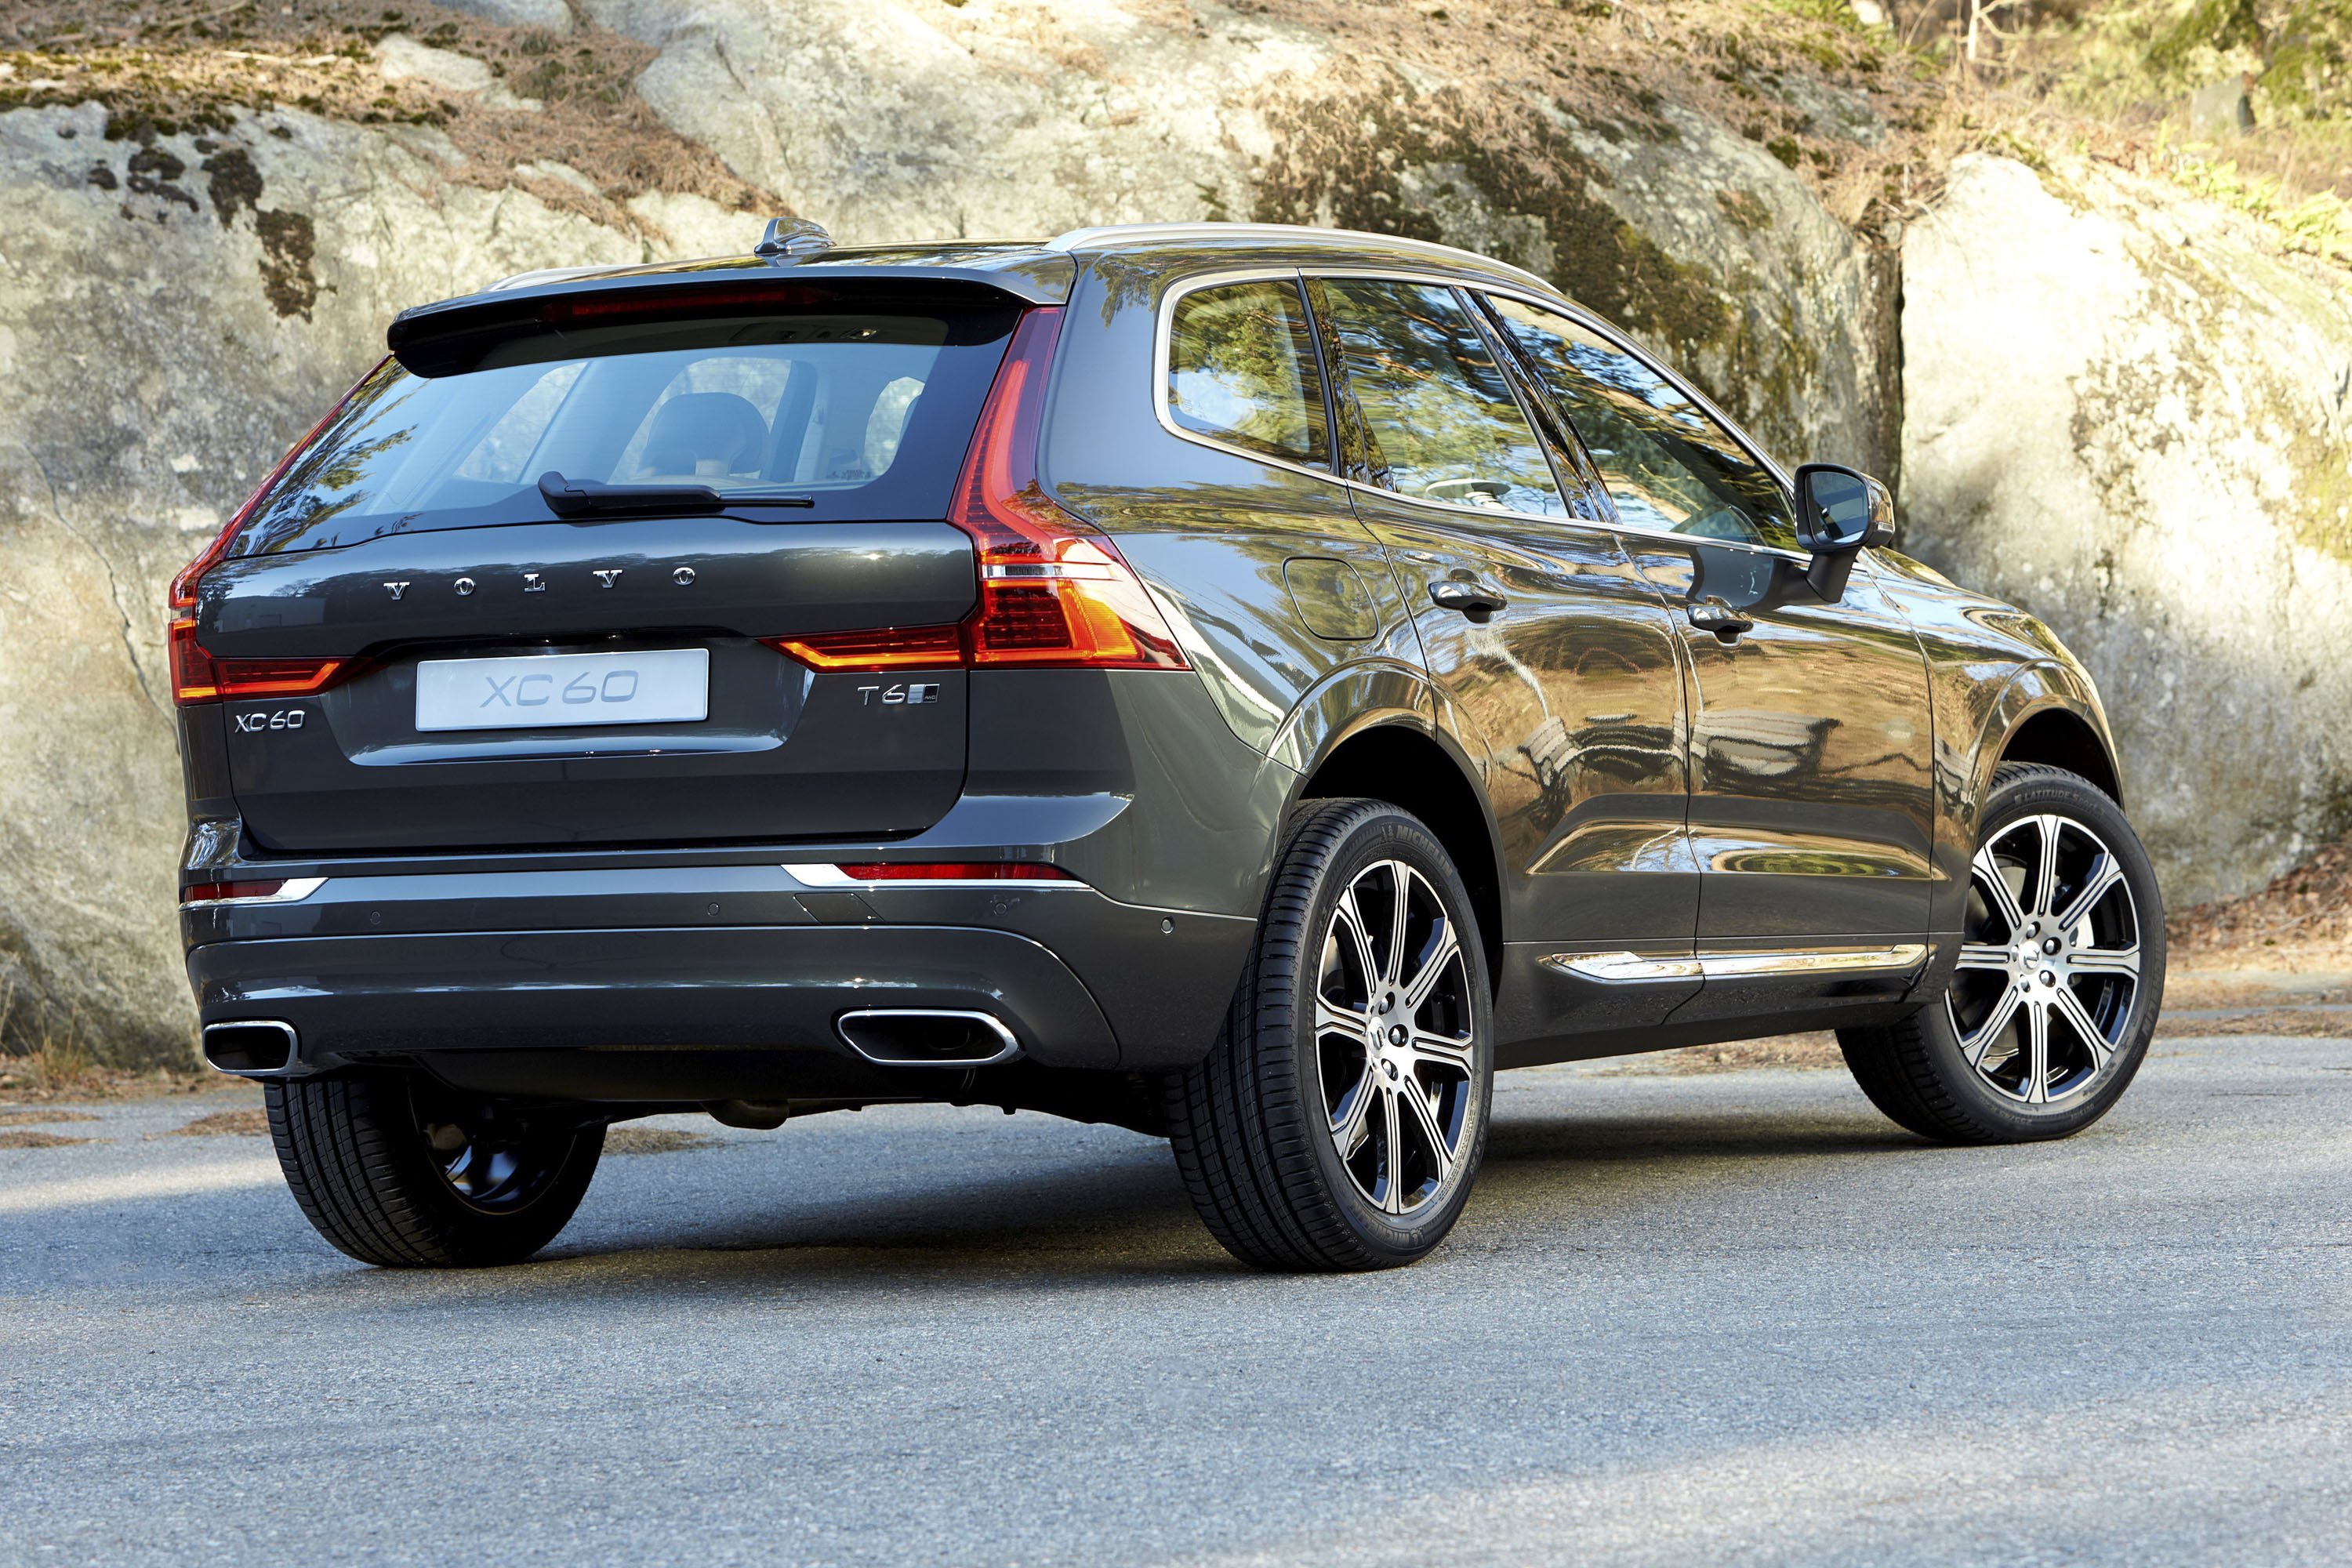 Wallpaper Of The Day: 2016 Volvo XC60 | Top Speed. »